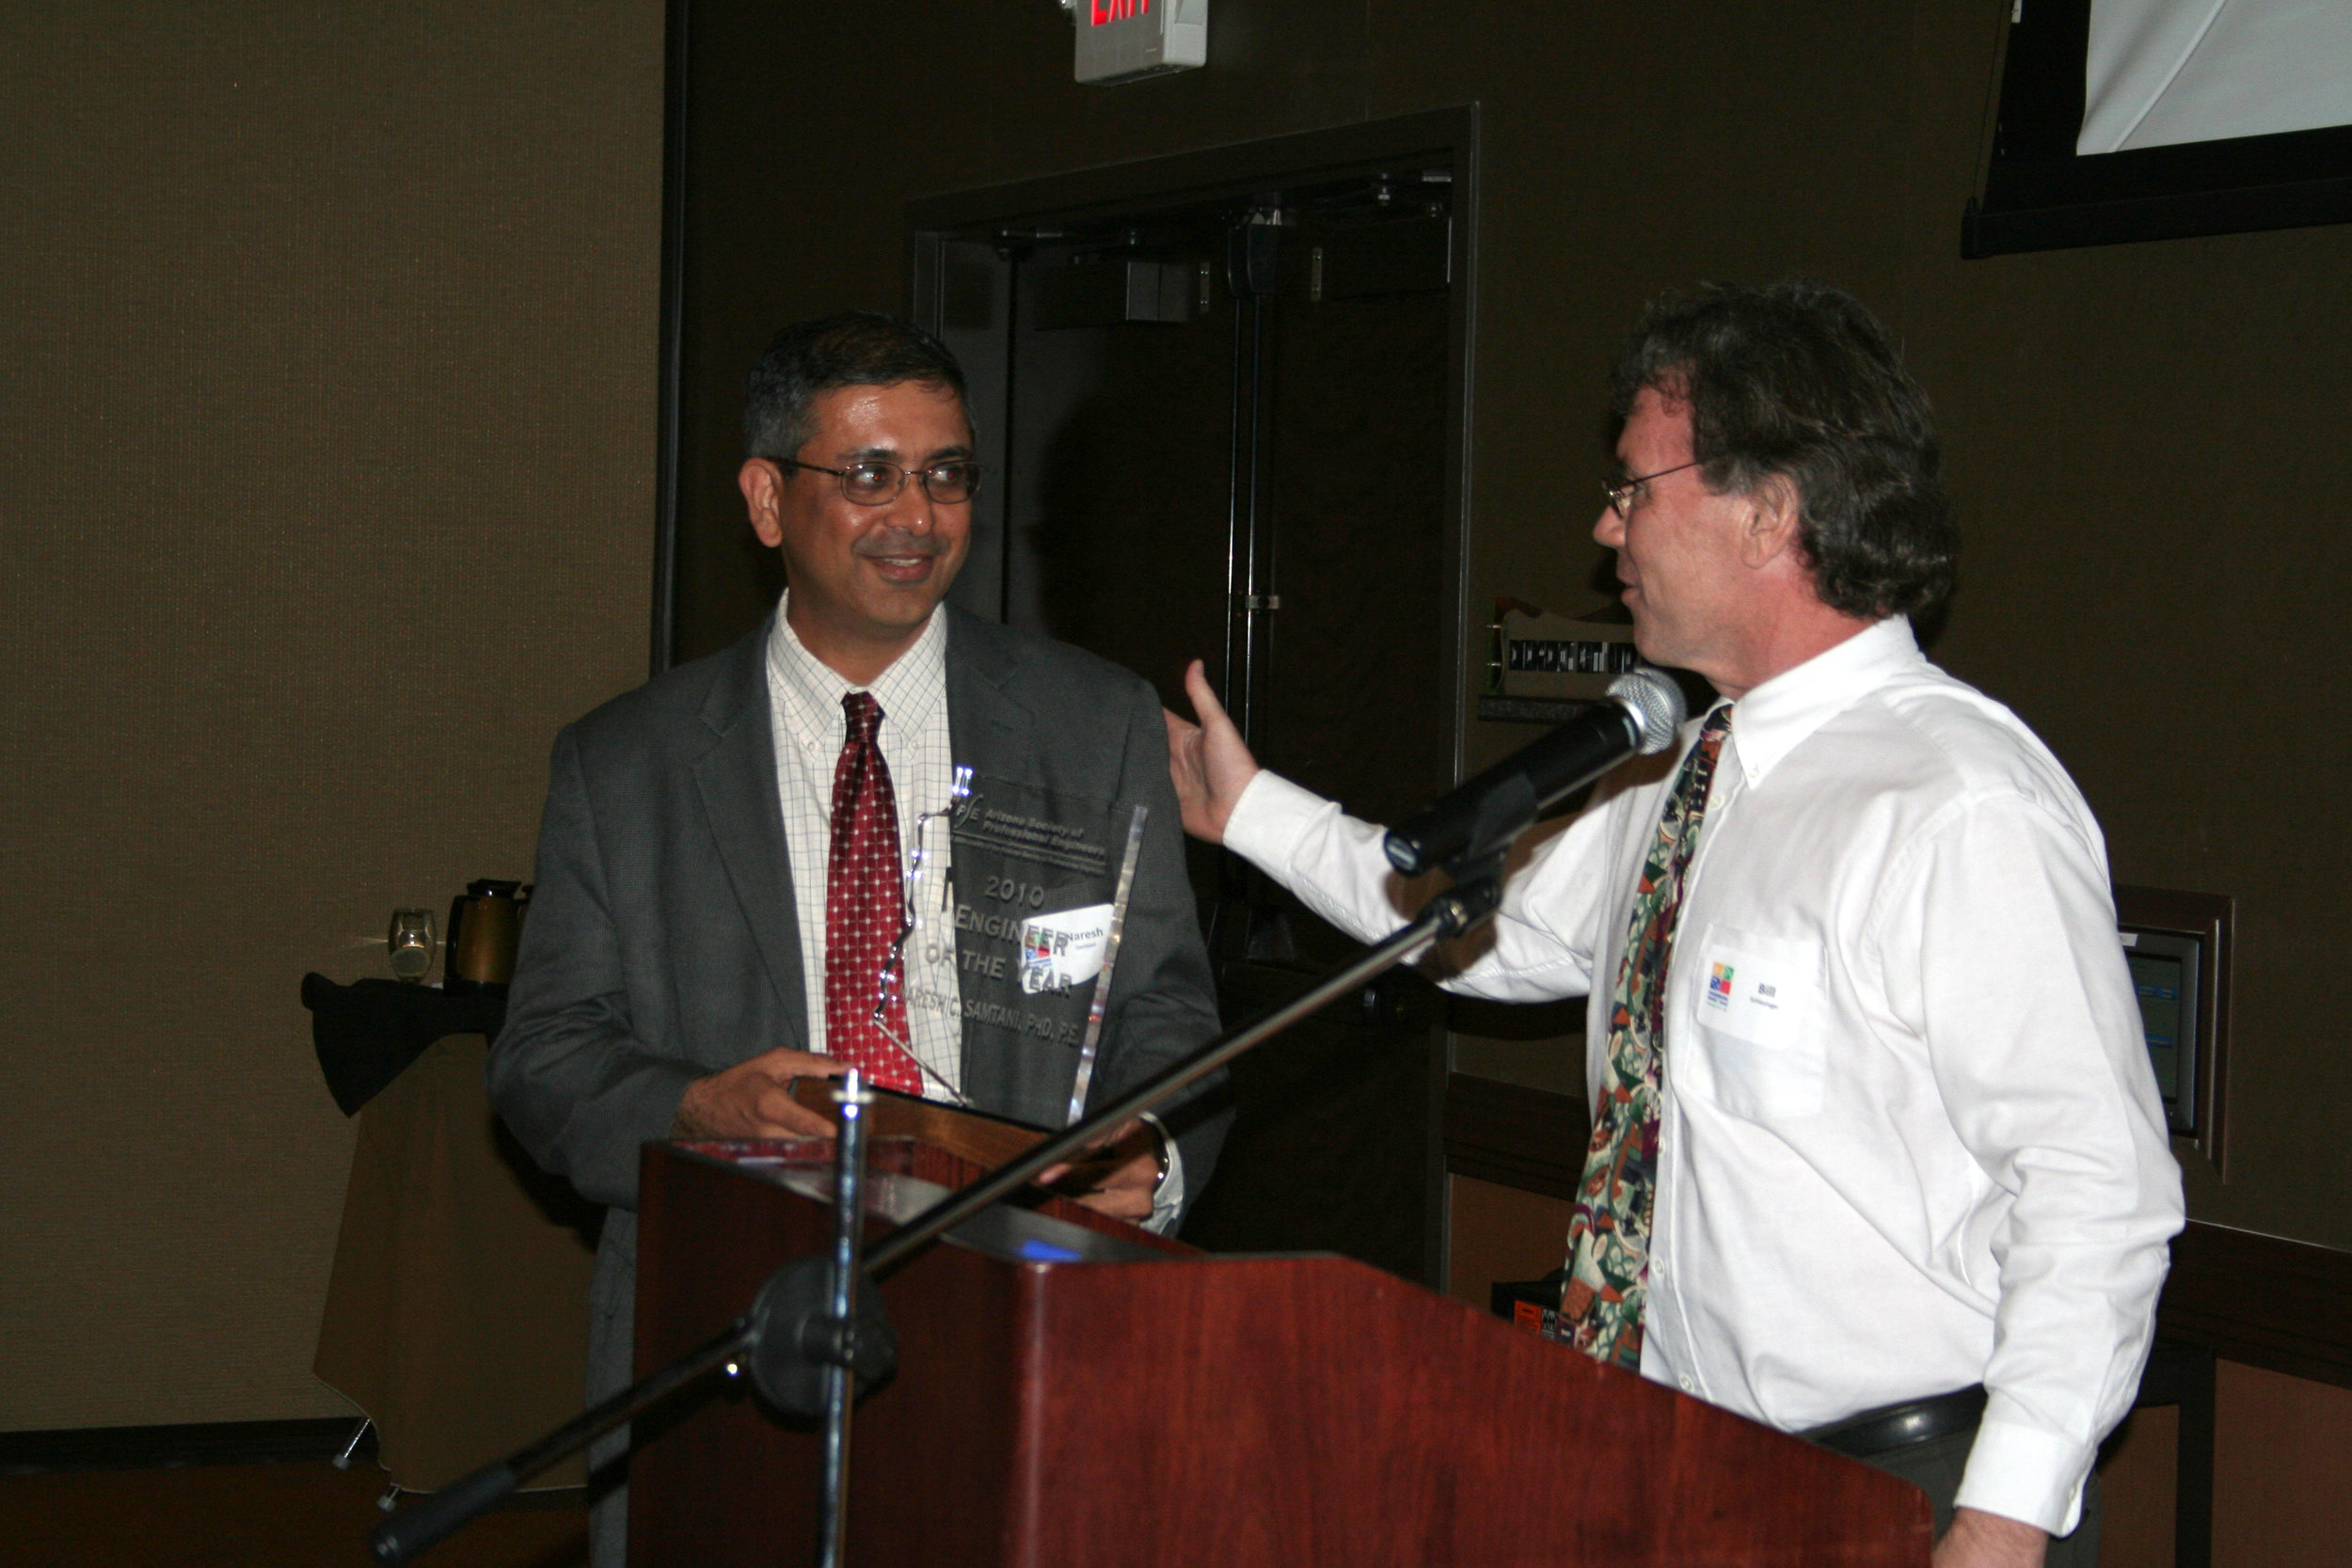 Bill Schlesinger presenting Naresh Samtani with the ASPE Engineer of the Year award